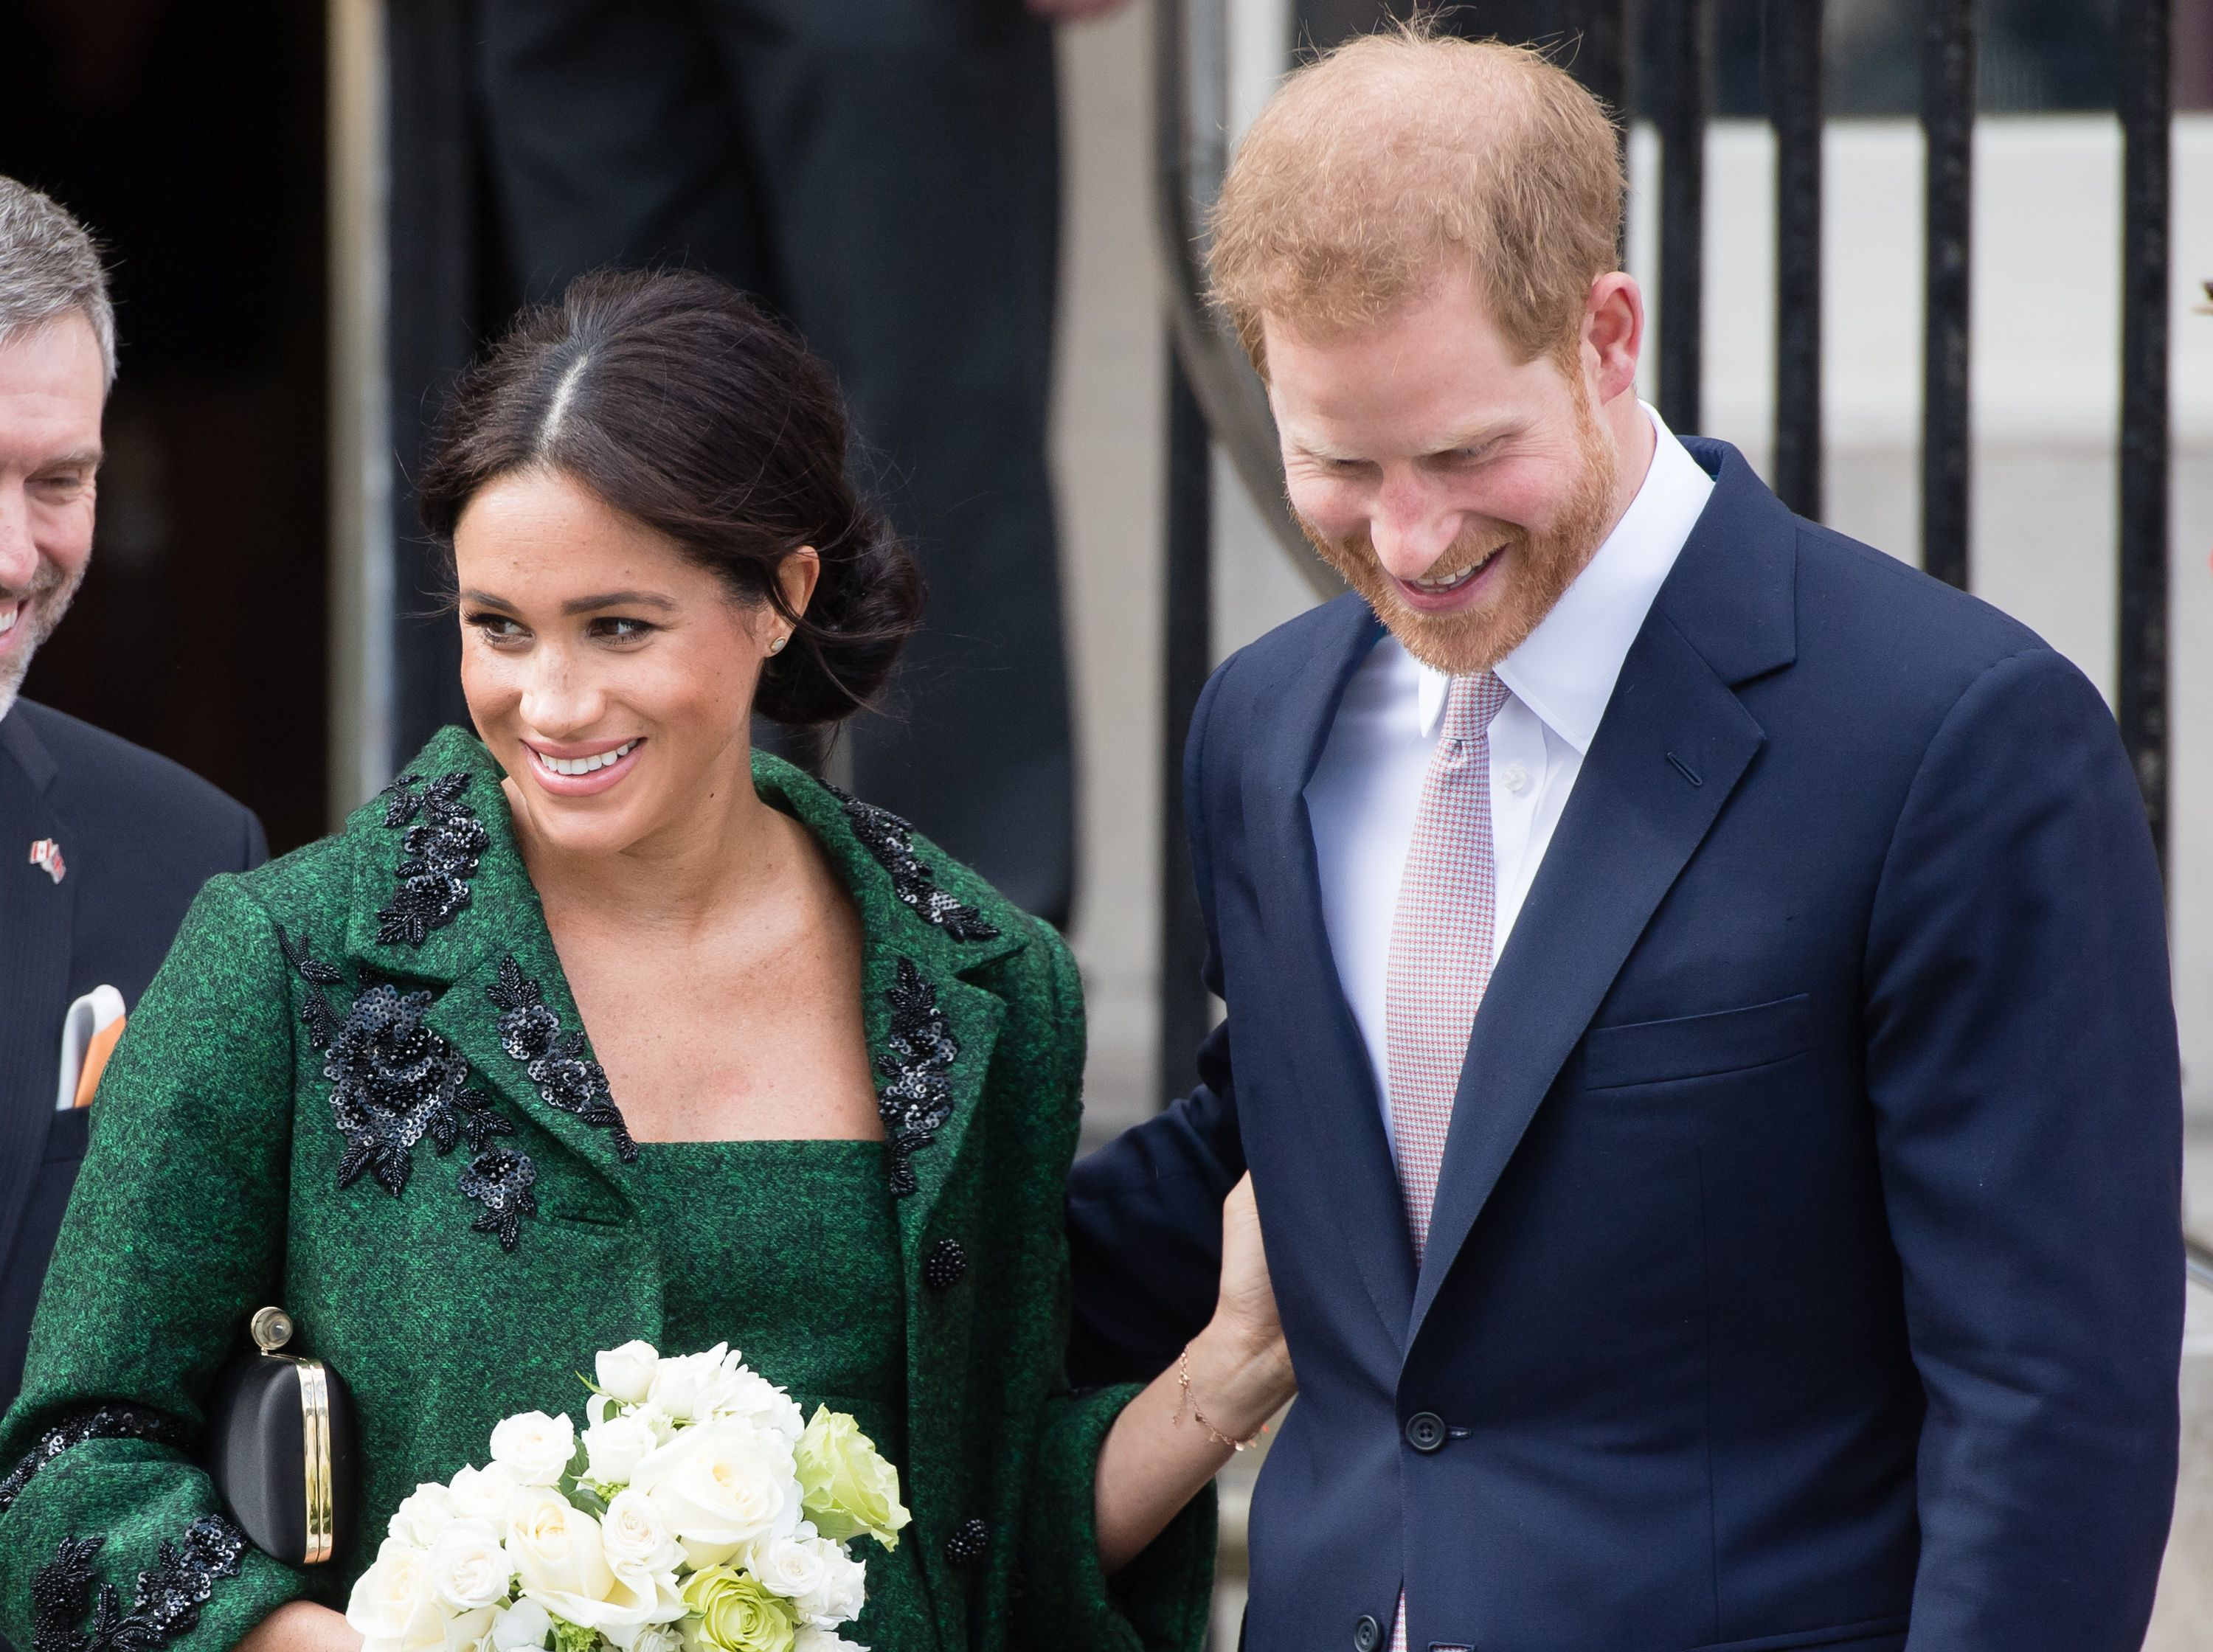 Prince Harry and Meghan Markle's Baby Boy is Here, and This is What His Nursery Could Look Like